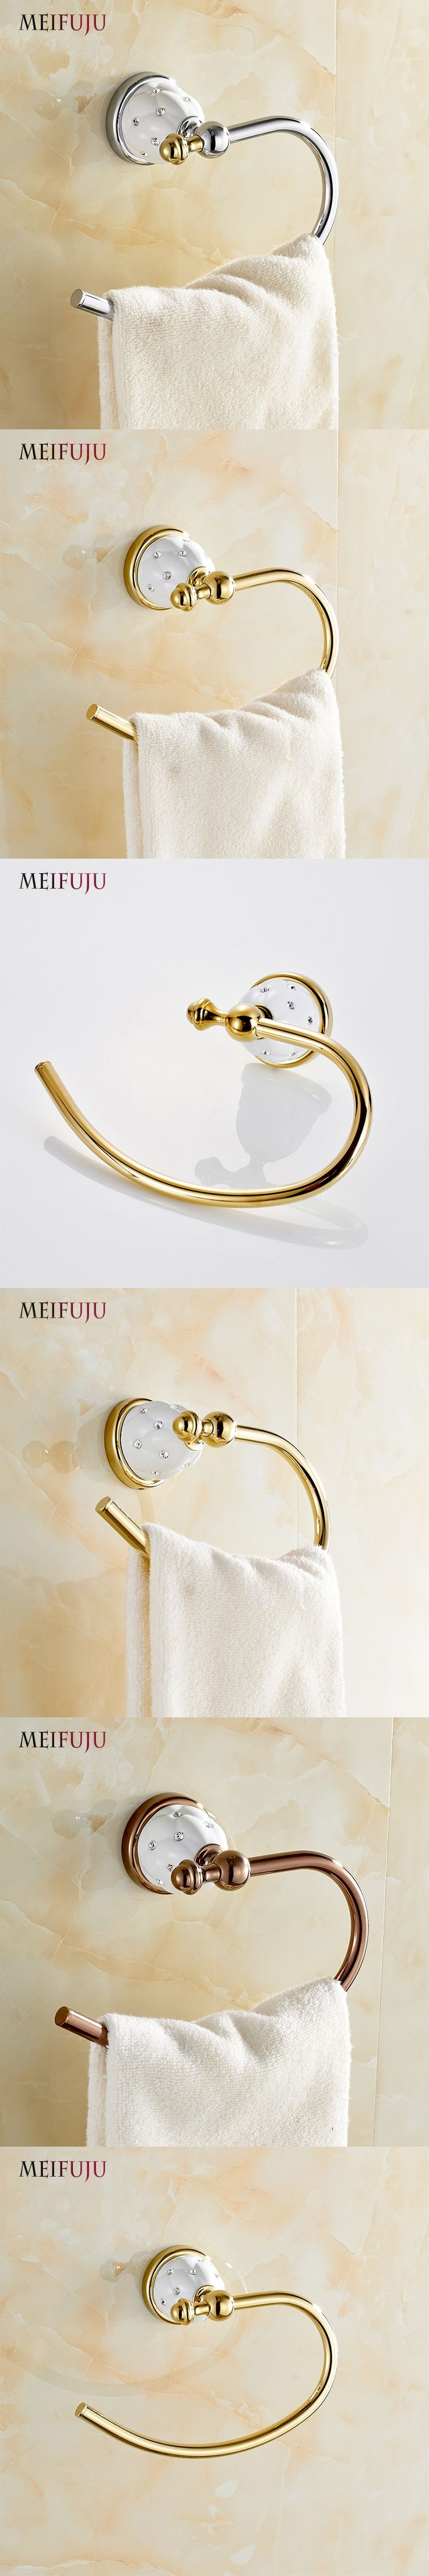 MEIFUJU Modern Towel Ring Solid Brass Copper Golden Finished Bathroom Accessories Products ,Towel Holder,Towel Bar Free Shipping